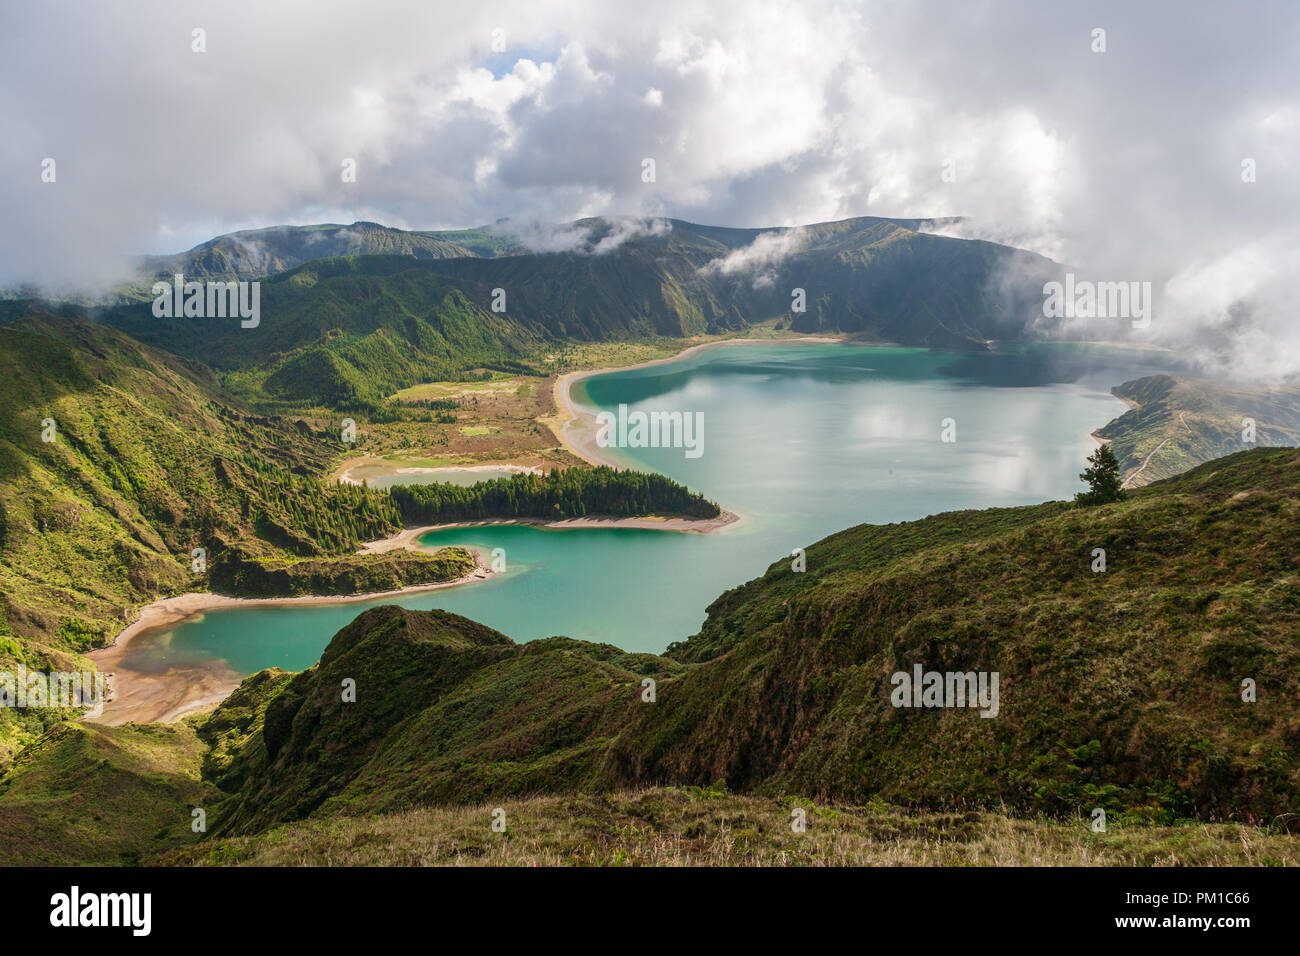 view of lake fogo sao miguel azores - Stock Image